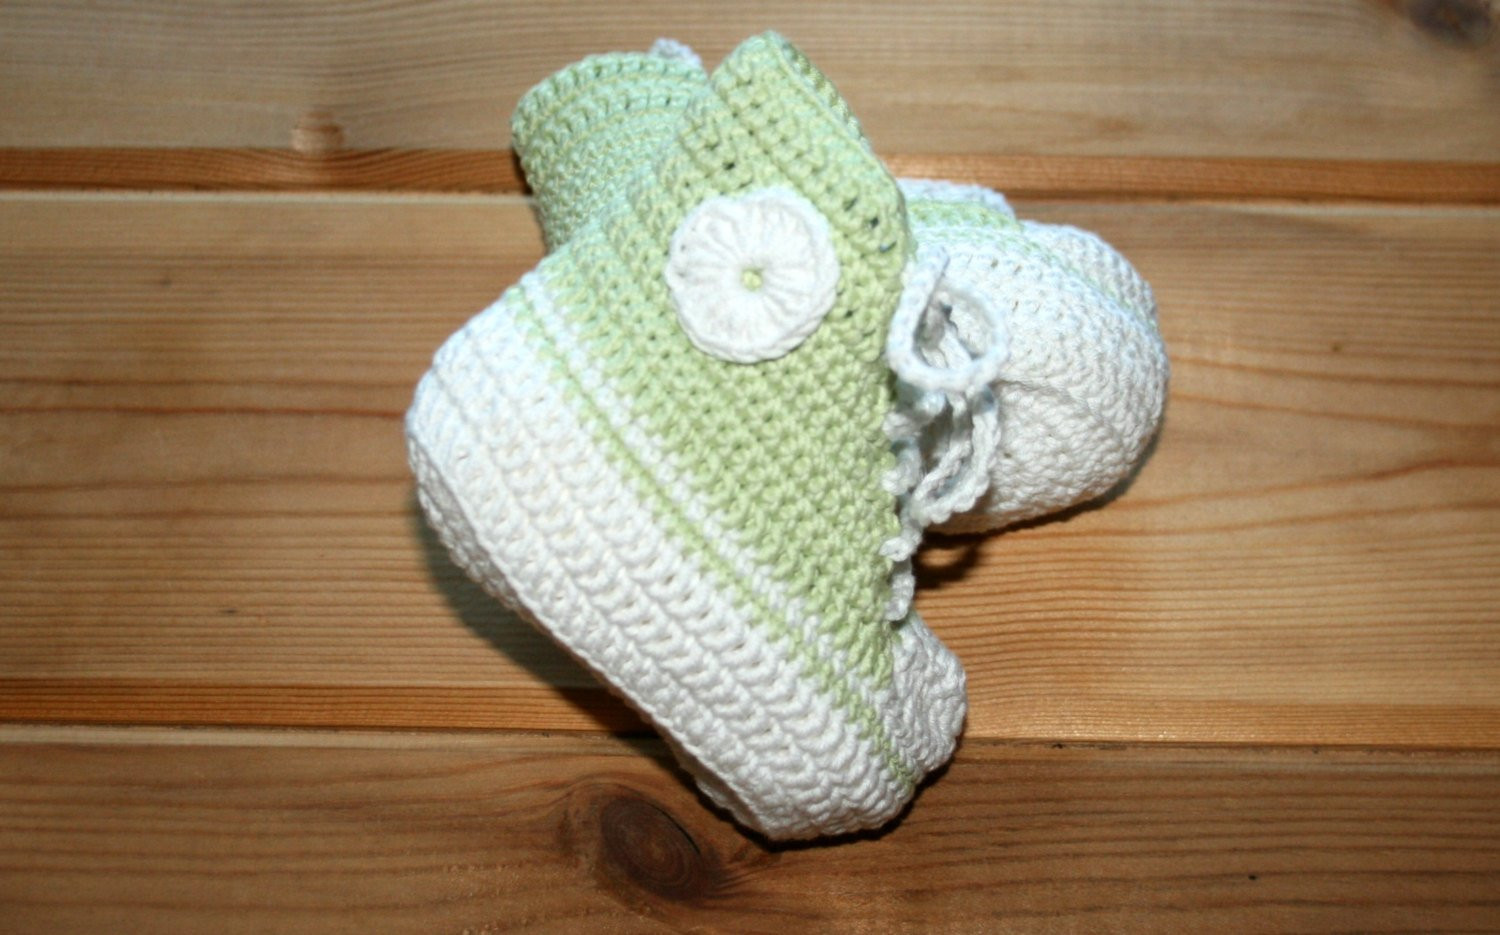 Beautiful Baby Converse Shoes Crochet Baby Booties Etsy Baby Crochet Converse Baby Booties Of Wonderful 41 Models Crochet Converse Baby Booties